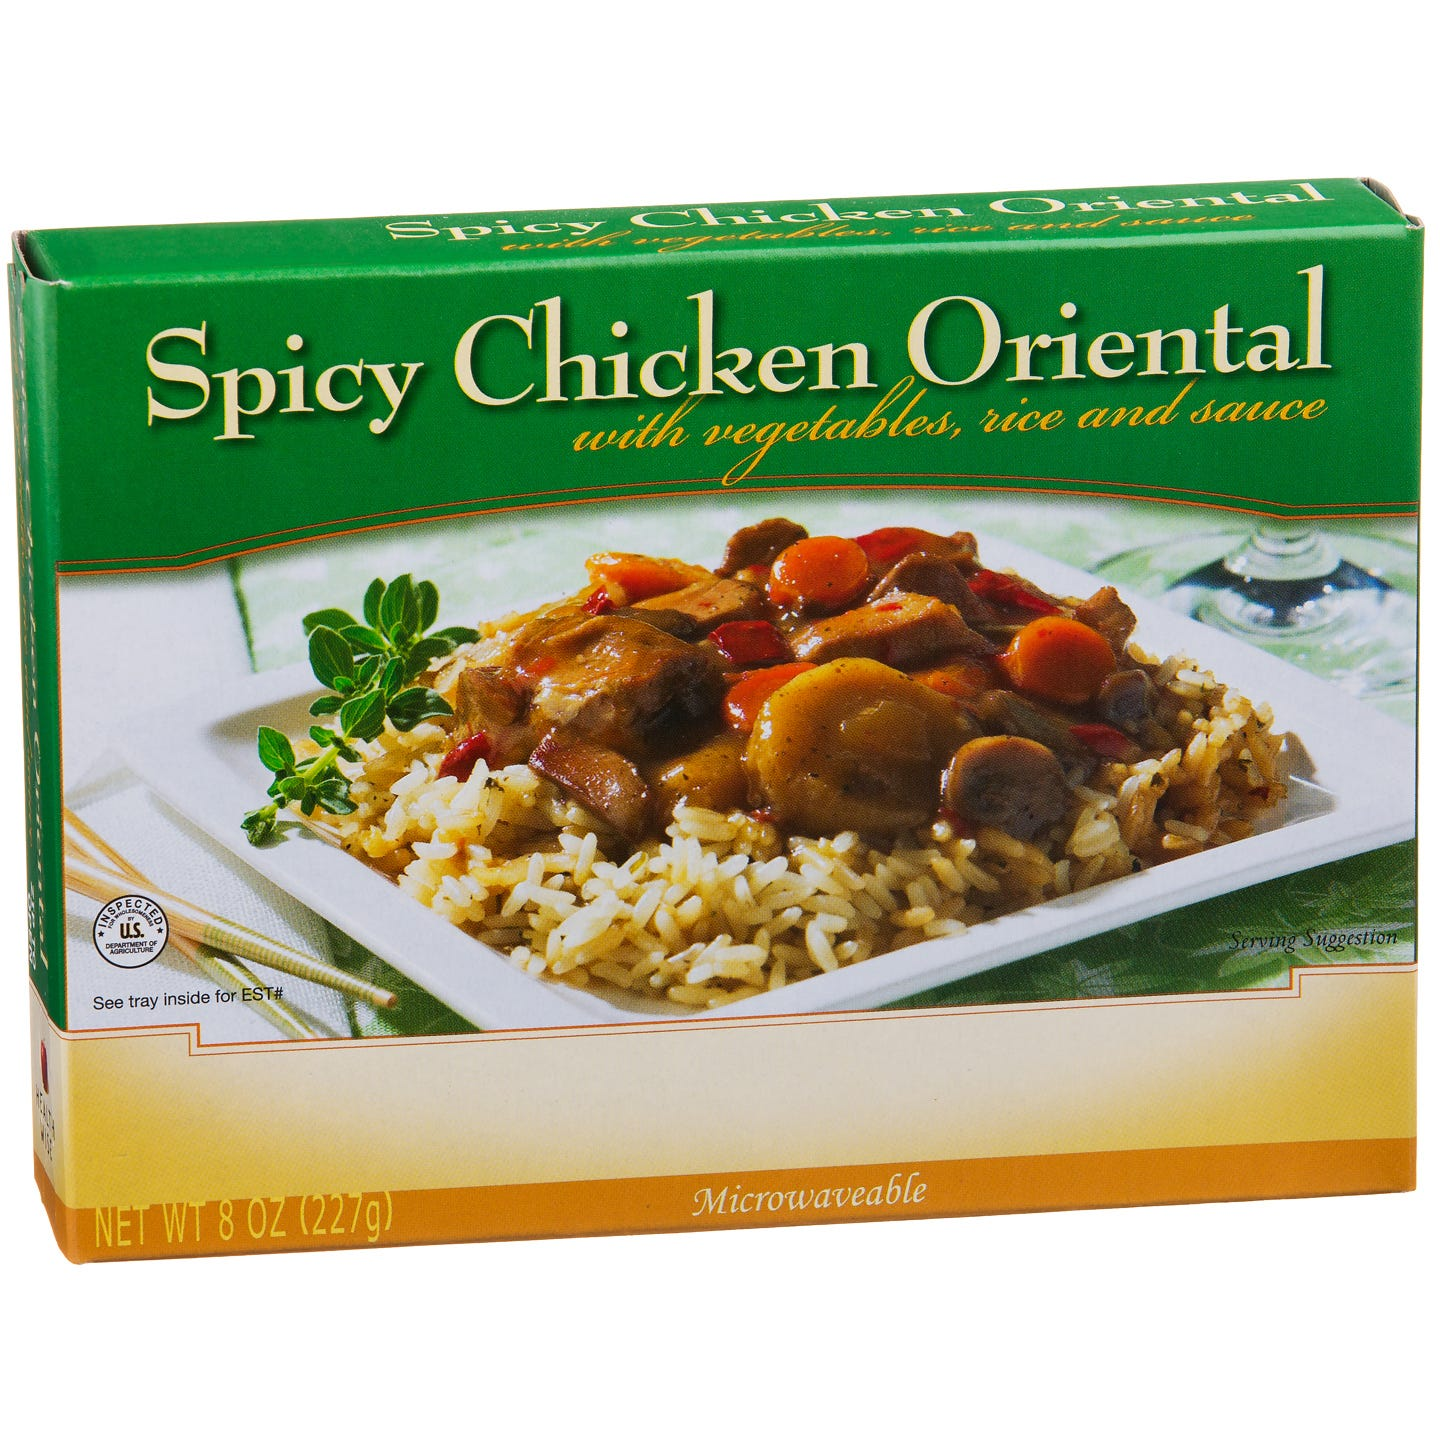 Low Calorie Meal Spicy Chicken Oriental 8 oz, BariWise